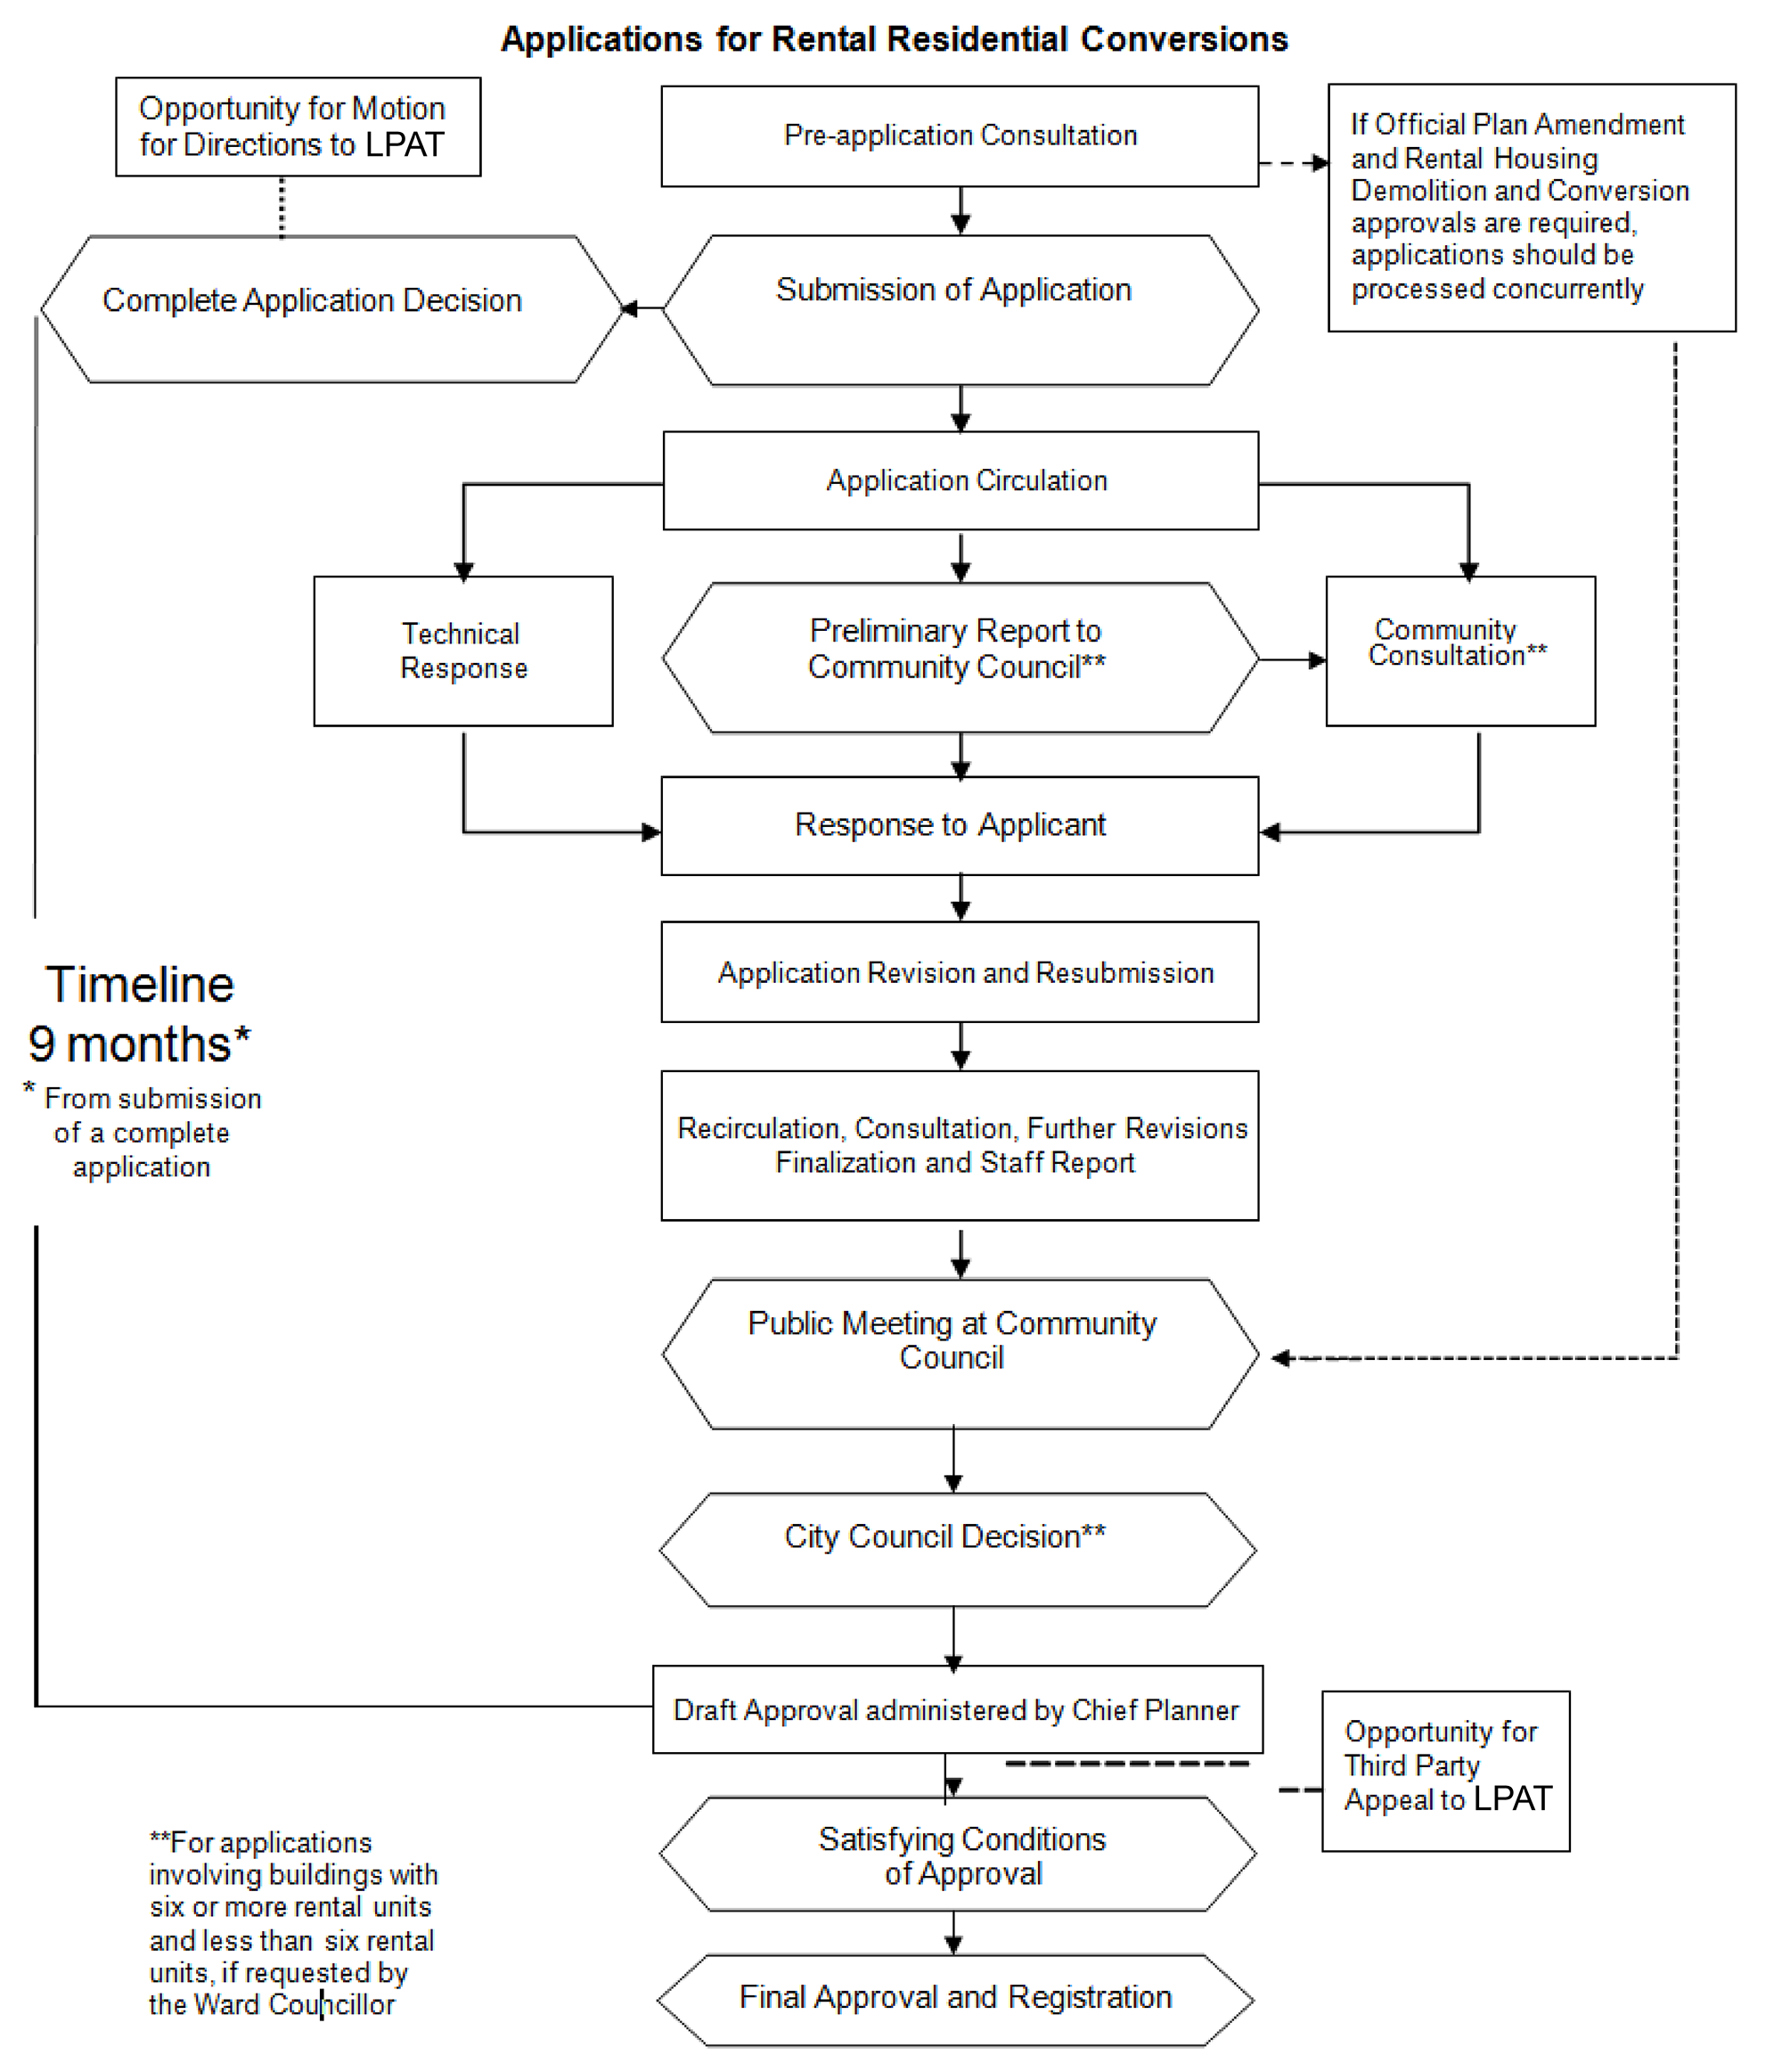 This complex flowchart shows the application process for Rental Residential Conversion. For more information, please email developingtoronto@toronto.ca